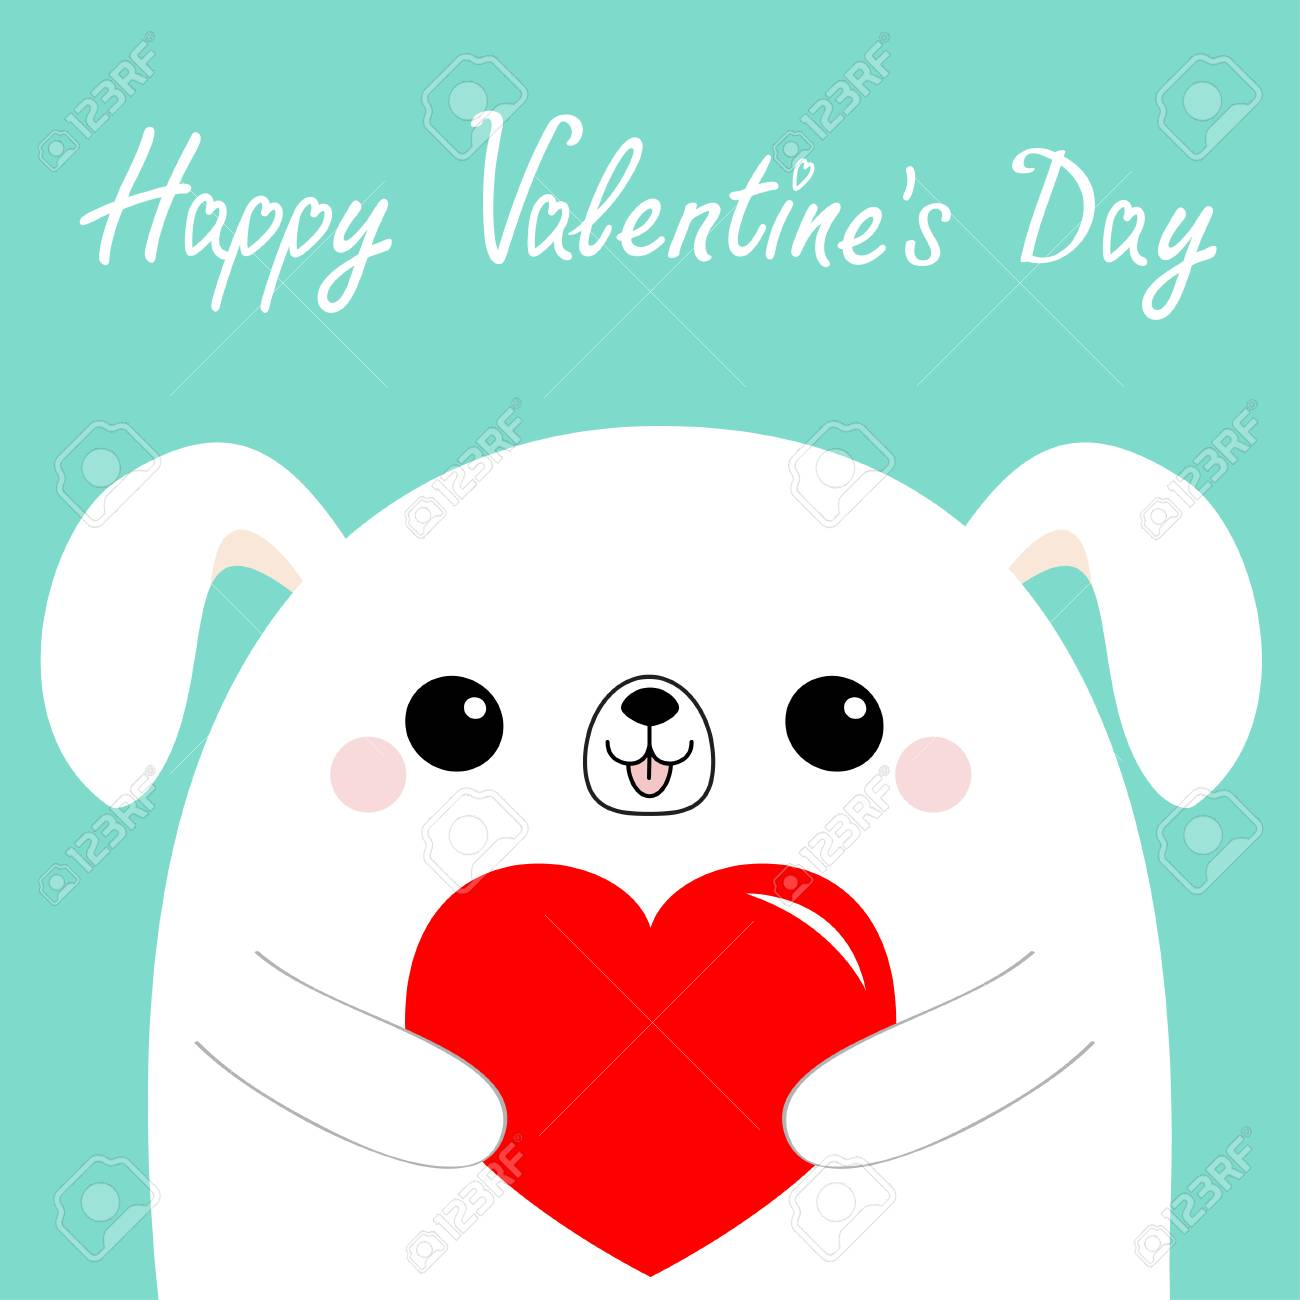 Happy Valentines Day White Dog Puppy Head Face Holding Red Paper Royalty Free Cliparts Vectors And Stock Illustration Image 117068043